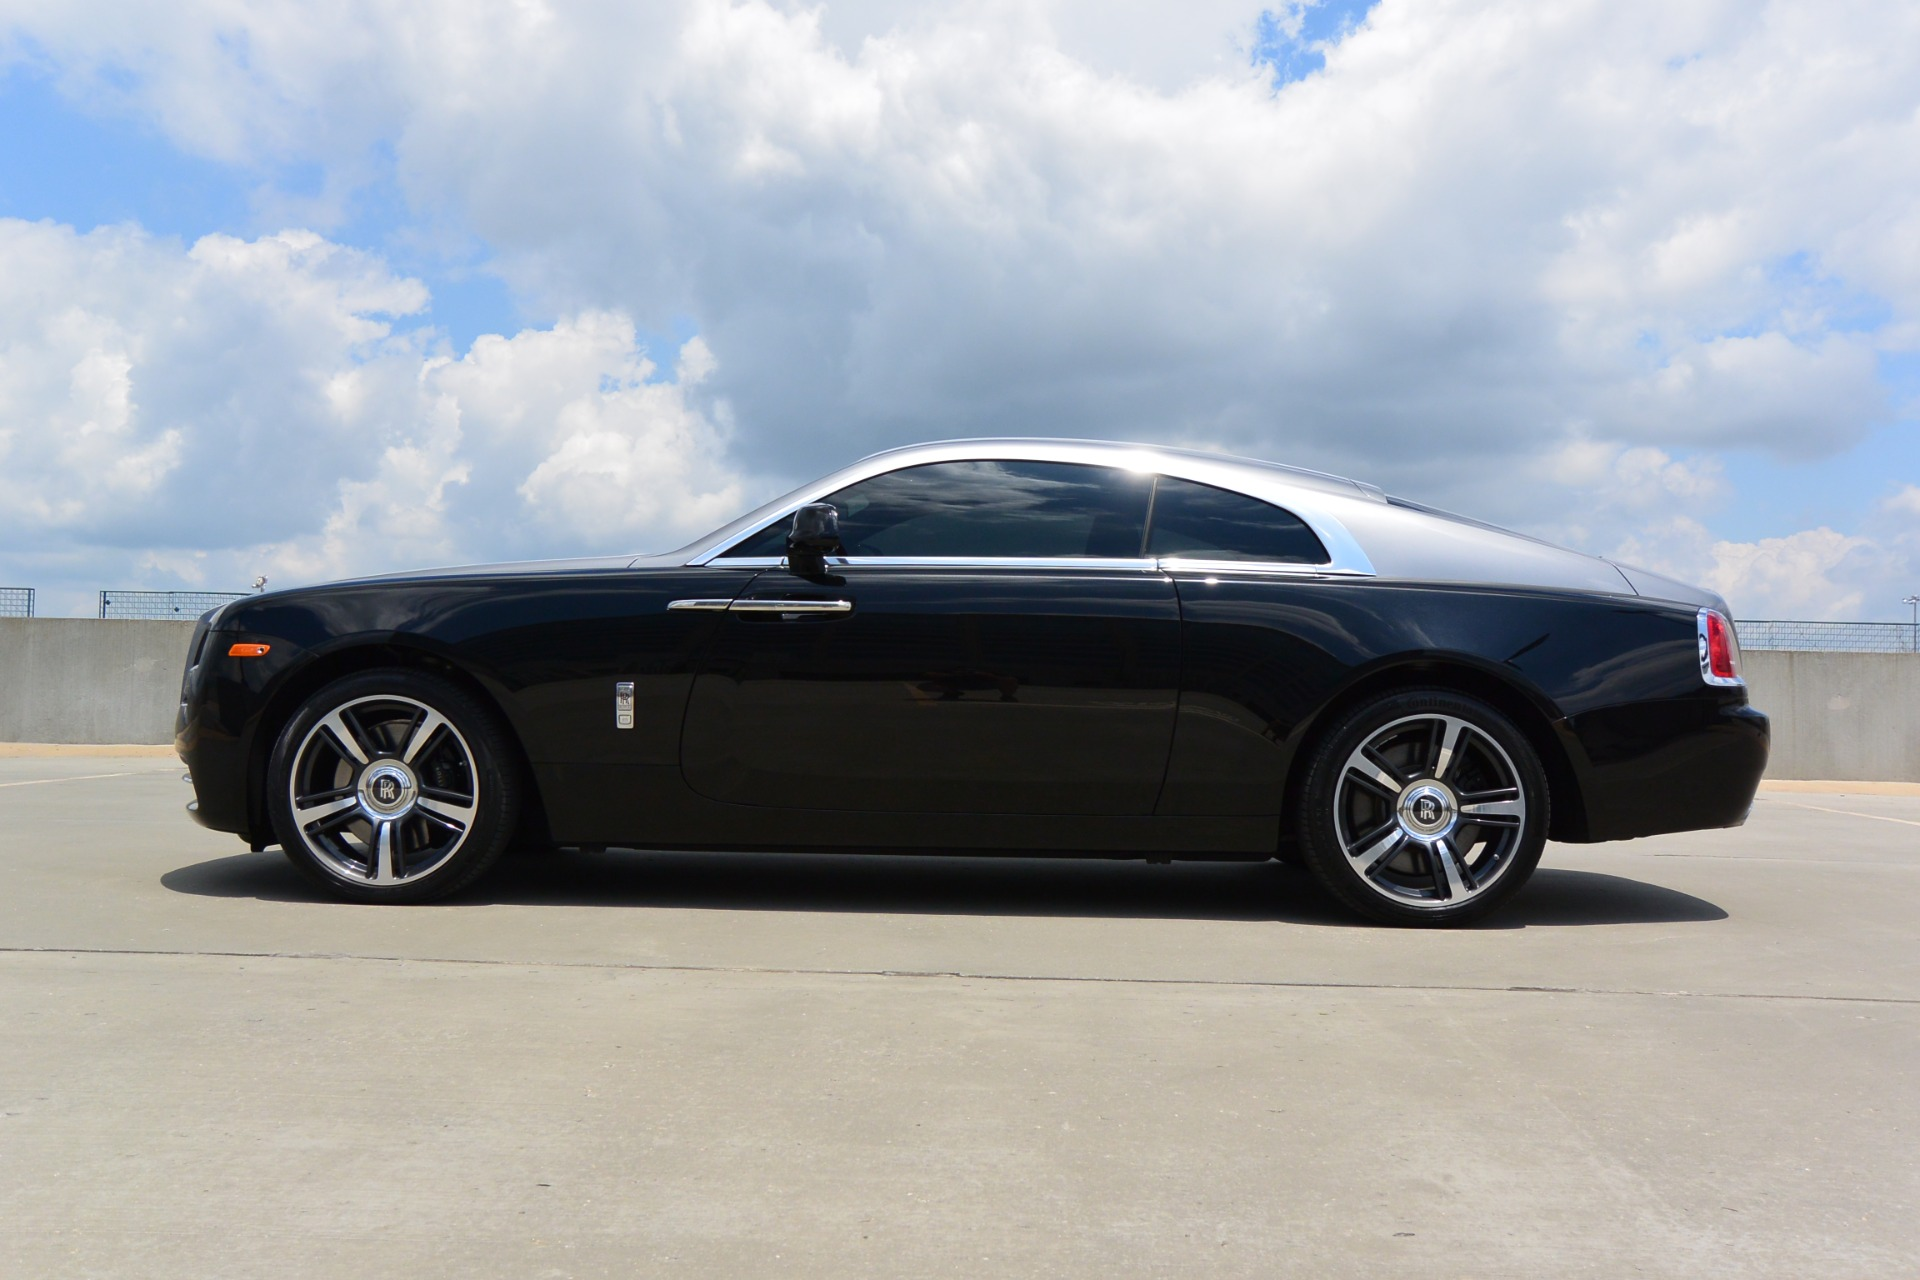 2014 rolls royce wraith stock ceux84231 for sale near jackson ms ms rolls royce dealer. Black Bedroom Furniture Sets. Home Design Ideas